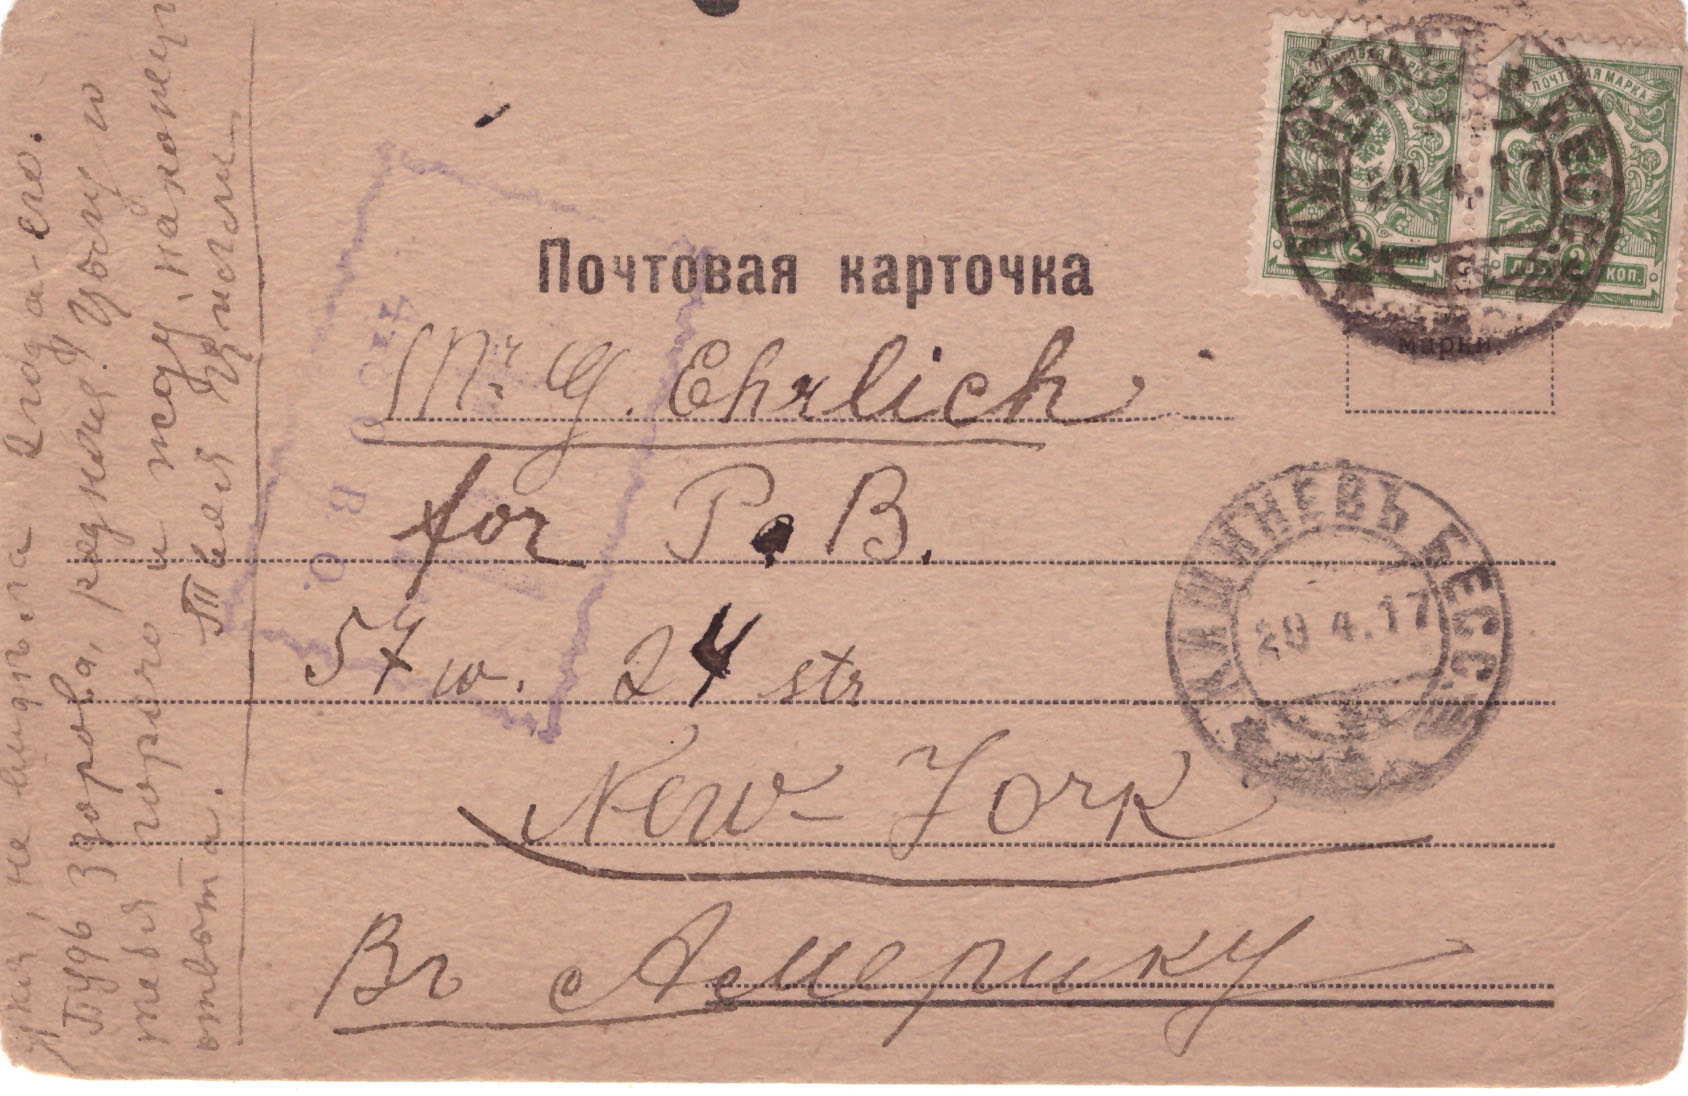 Postcard to PB from Tsillie April 28 1917 A